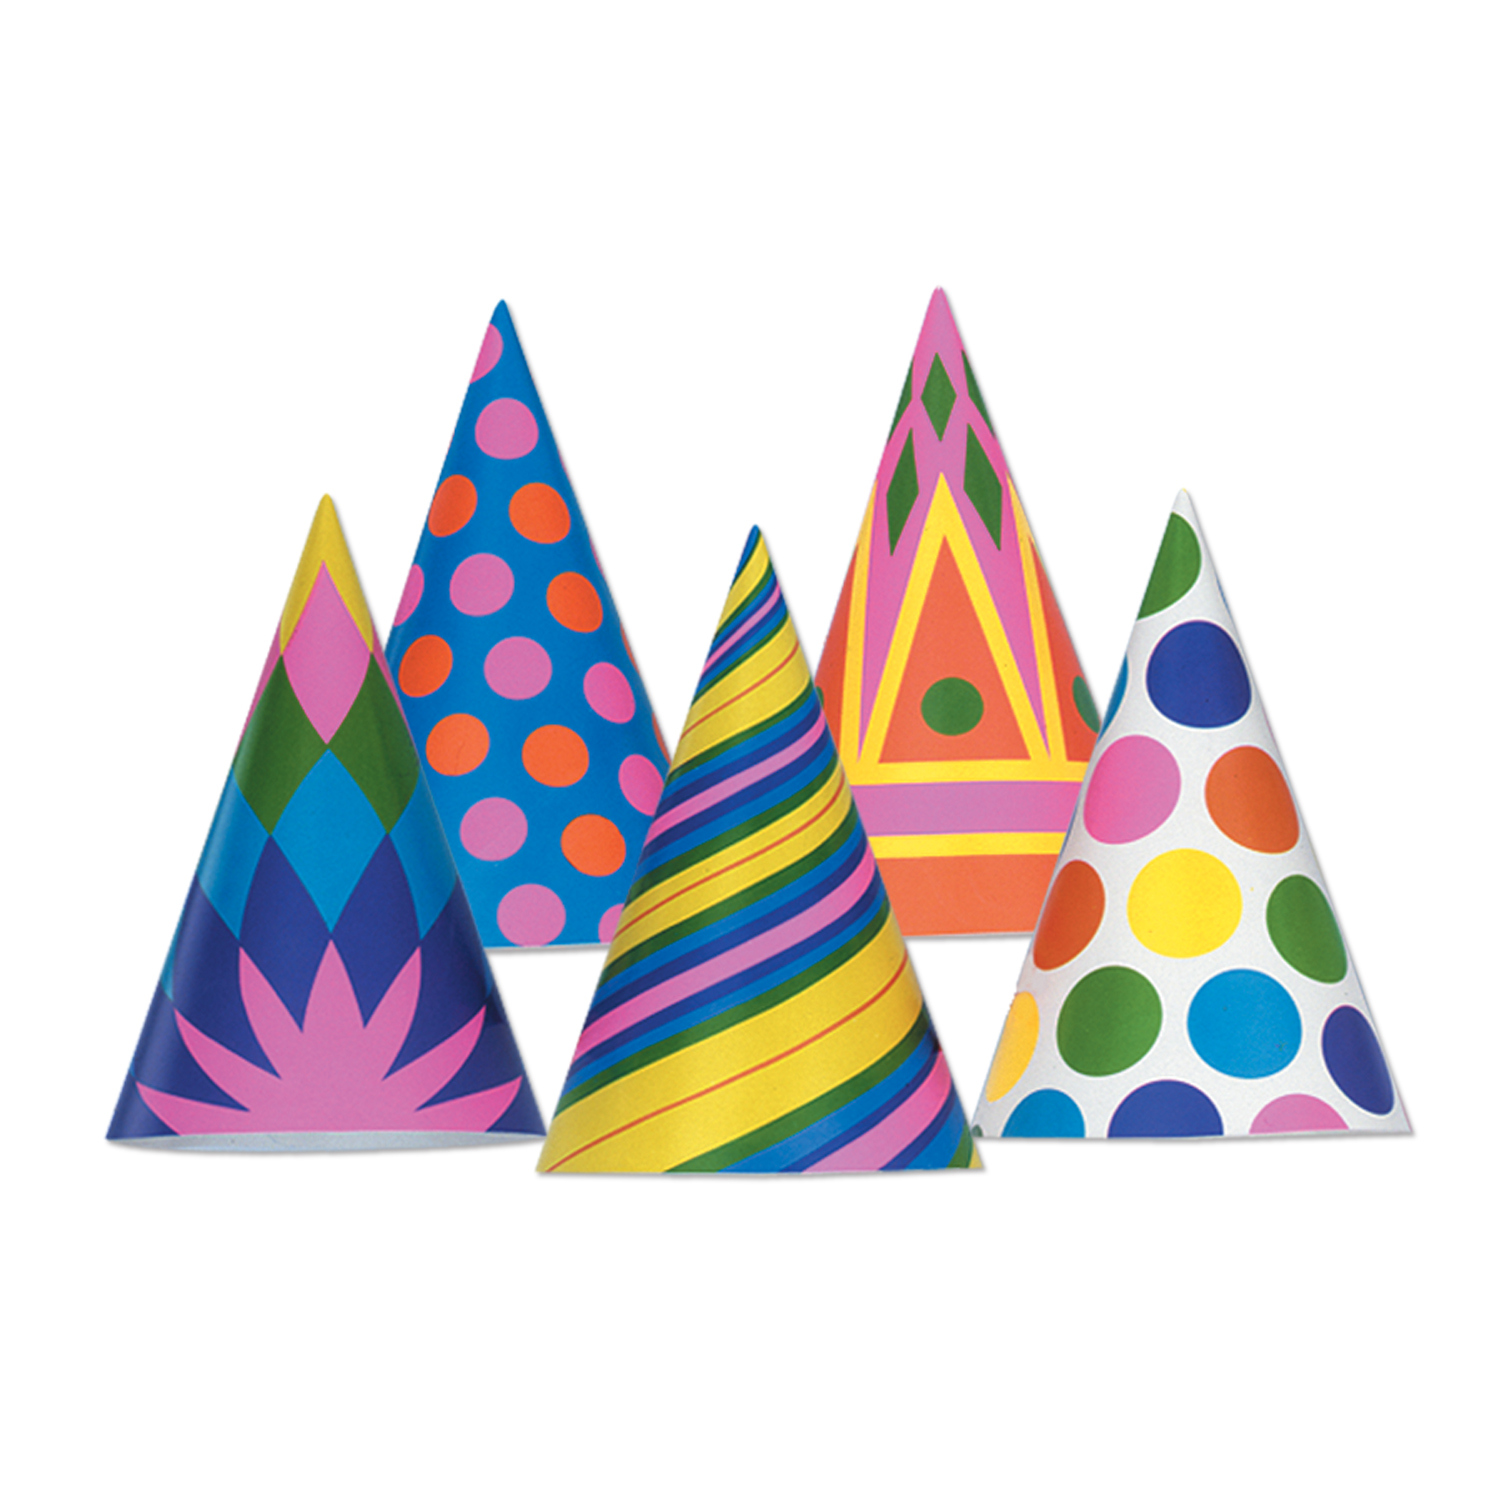 Cone Hats (pack of 144) Cone Hats, party favor, birthday, wholesale, inexpensive, bulk, hat